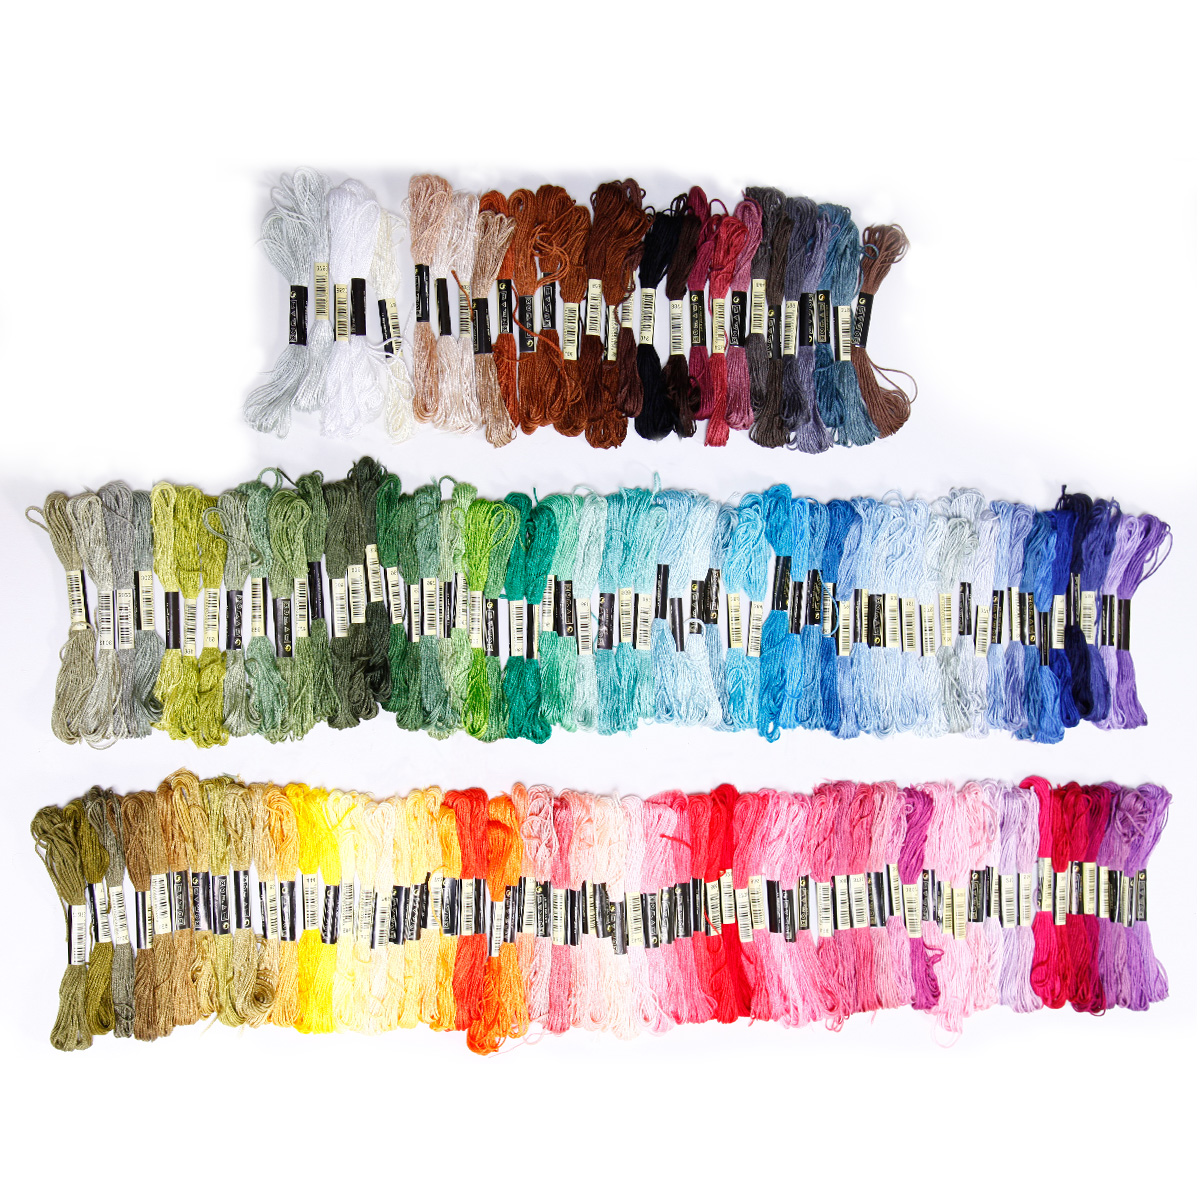 50-300-Color-Cross-Stitch-Thread-Embroidery-Floss-Sewing-Skeins-100-Cotton-Line thumbnail 15